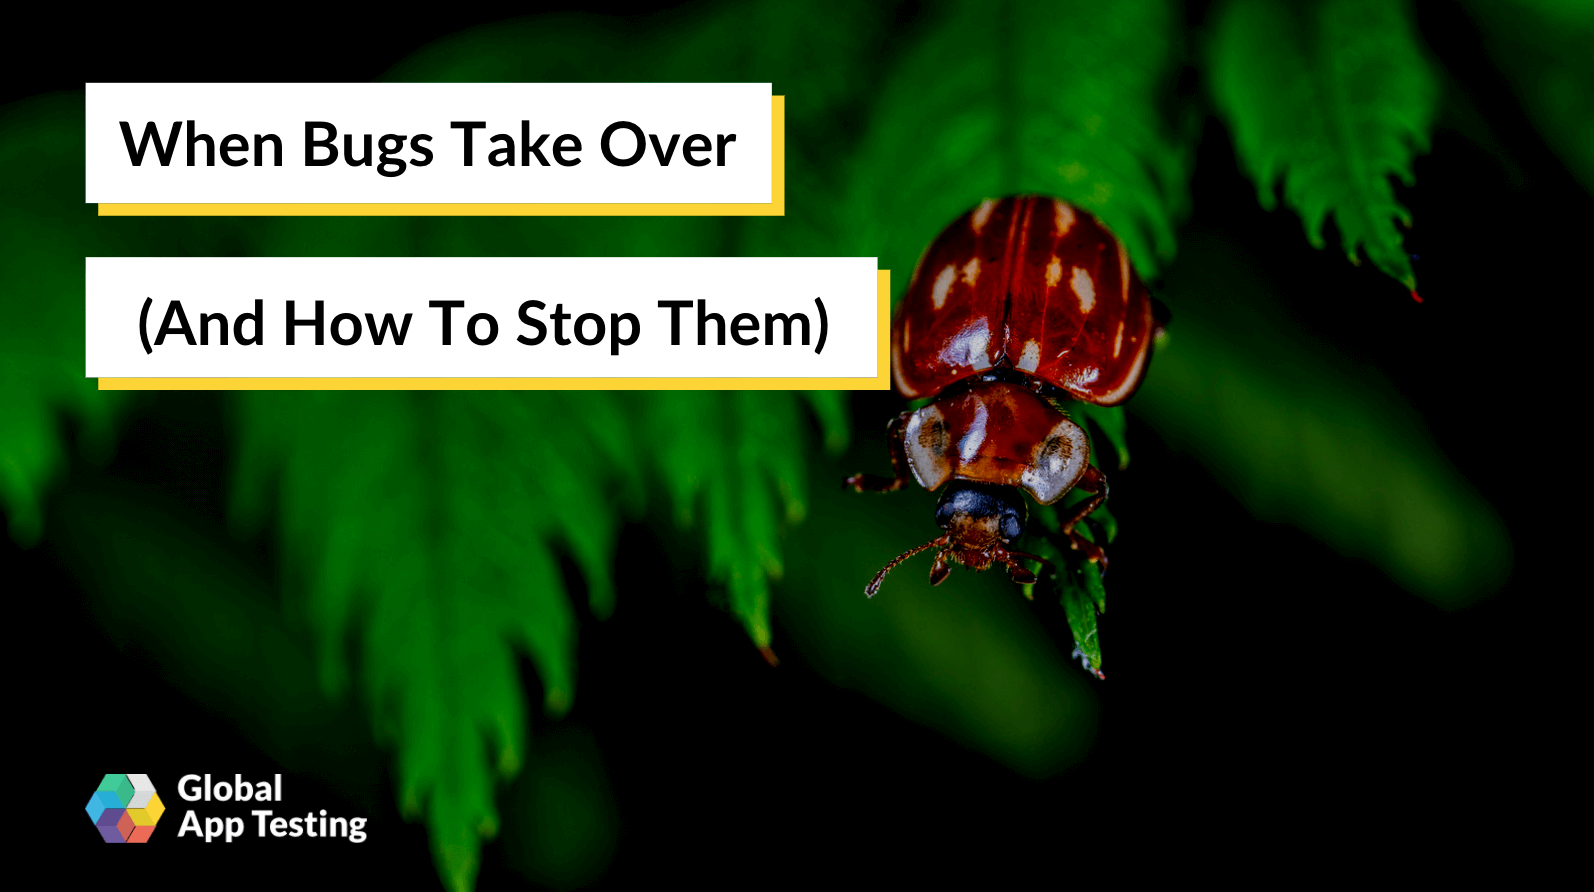 When Bugs Take Over (And How To Stop Them)